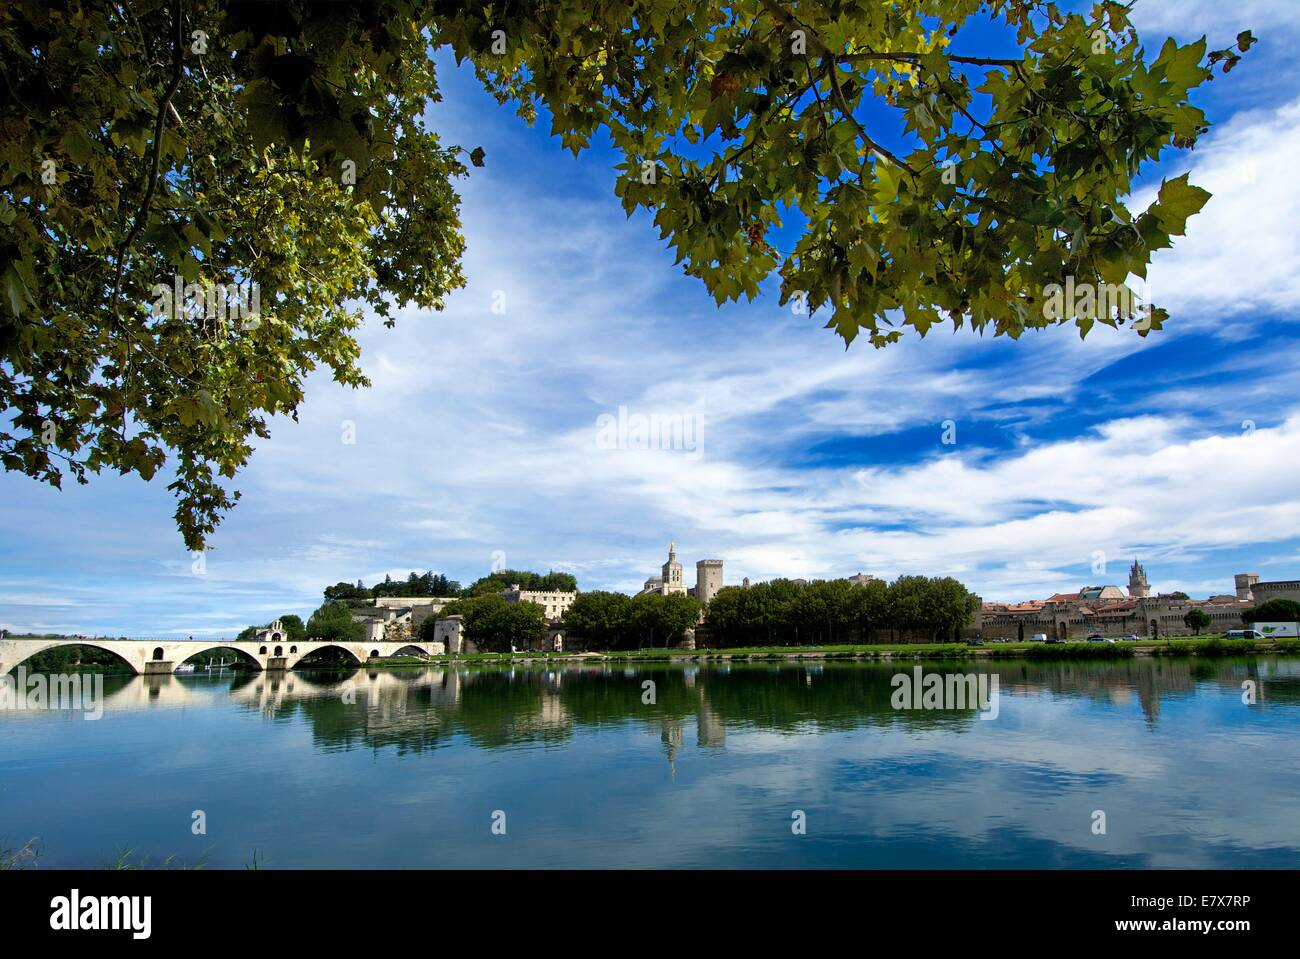 Palais des Papes and pont Saint Benezet on River Rhone, Avignon, Vaucluse, Provence-Alpes-Cote d'Azur, France. - Stock Image